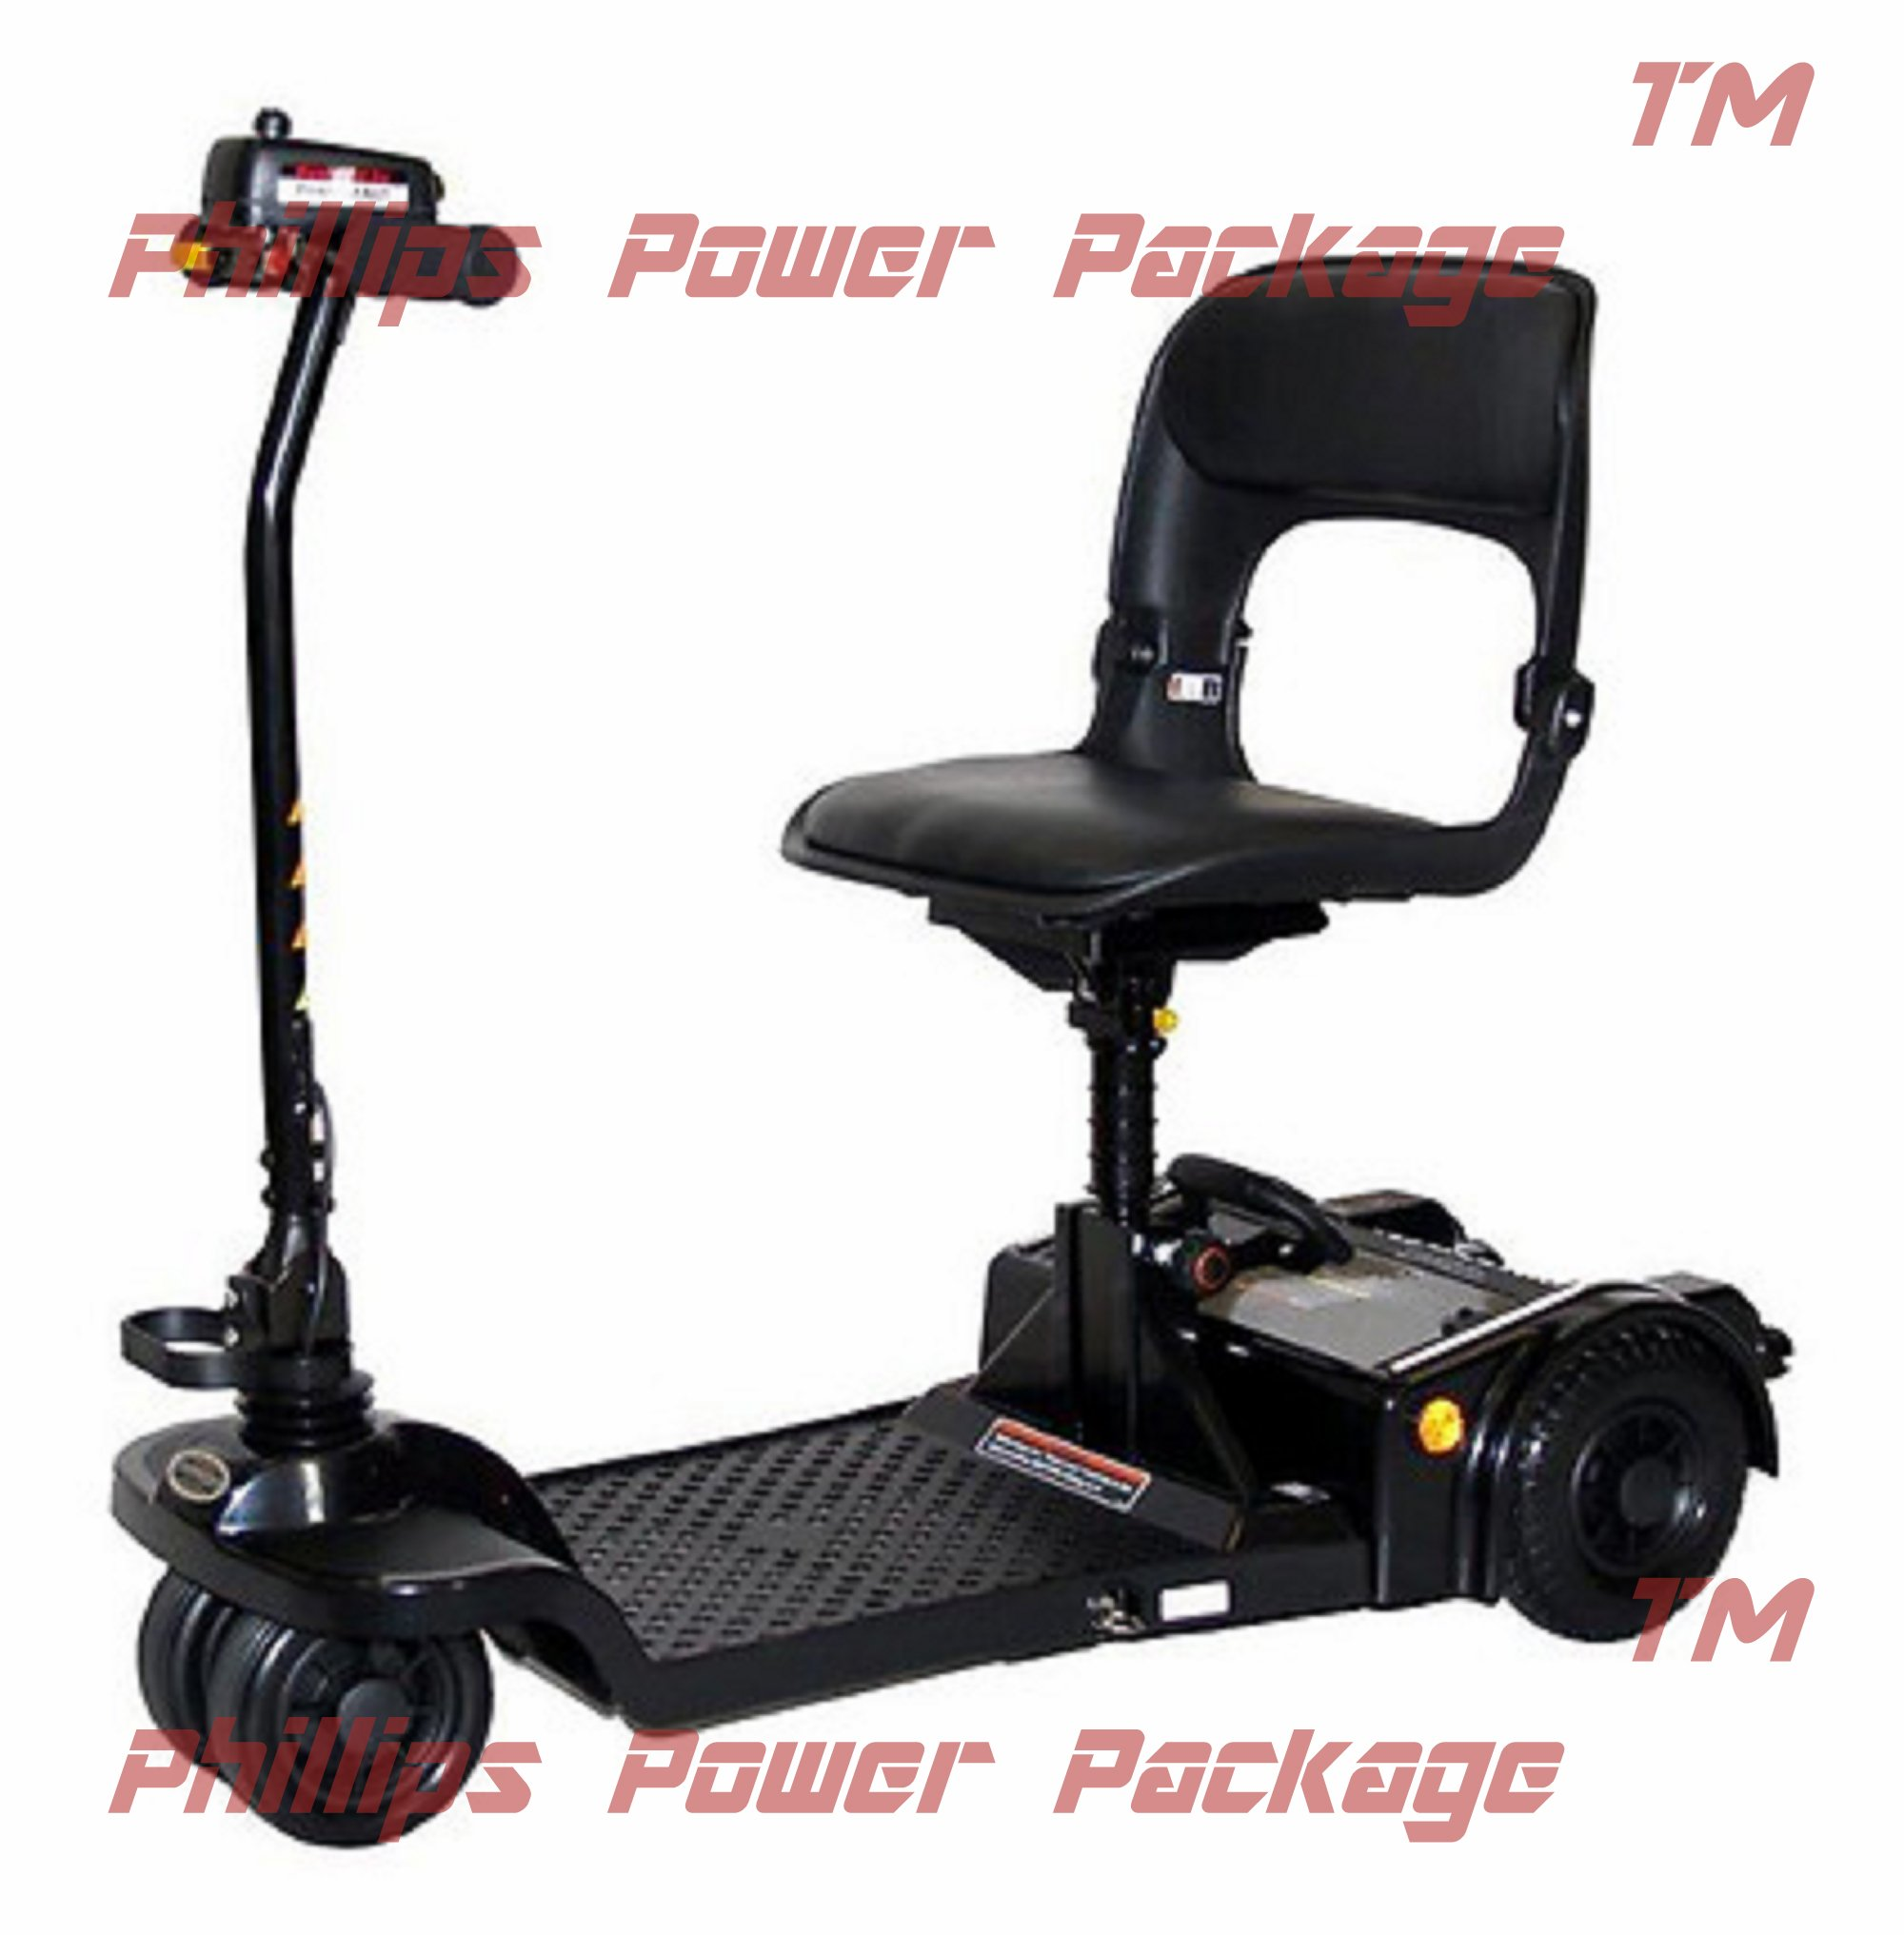 Shoprider - Echo Folding - Travel Scooter - 4-Wheel - Black - PHILLIPS POWER PACKAGE TM - TO $500 VALUE